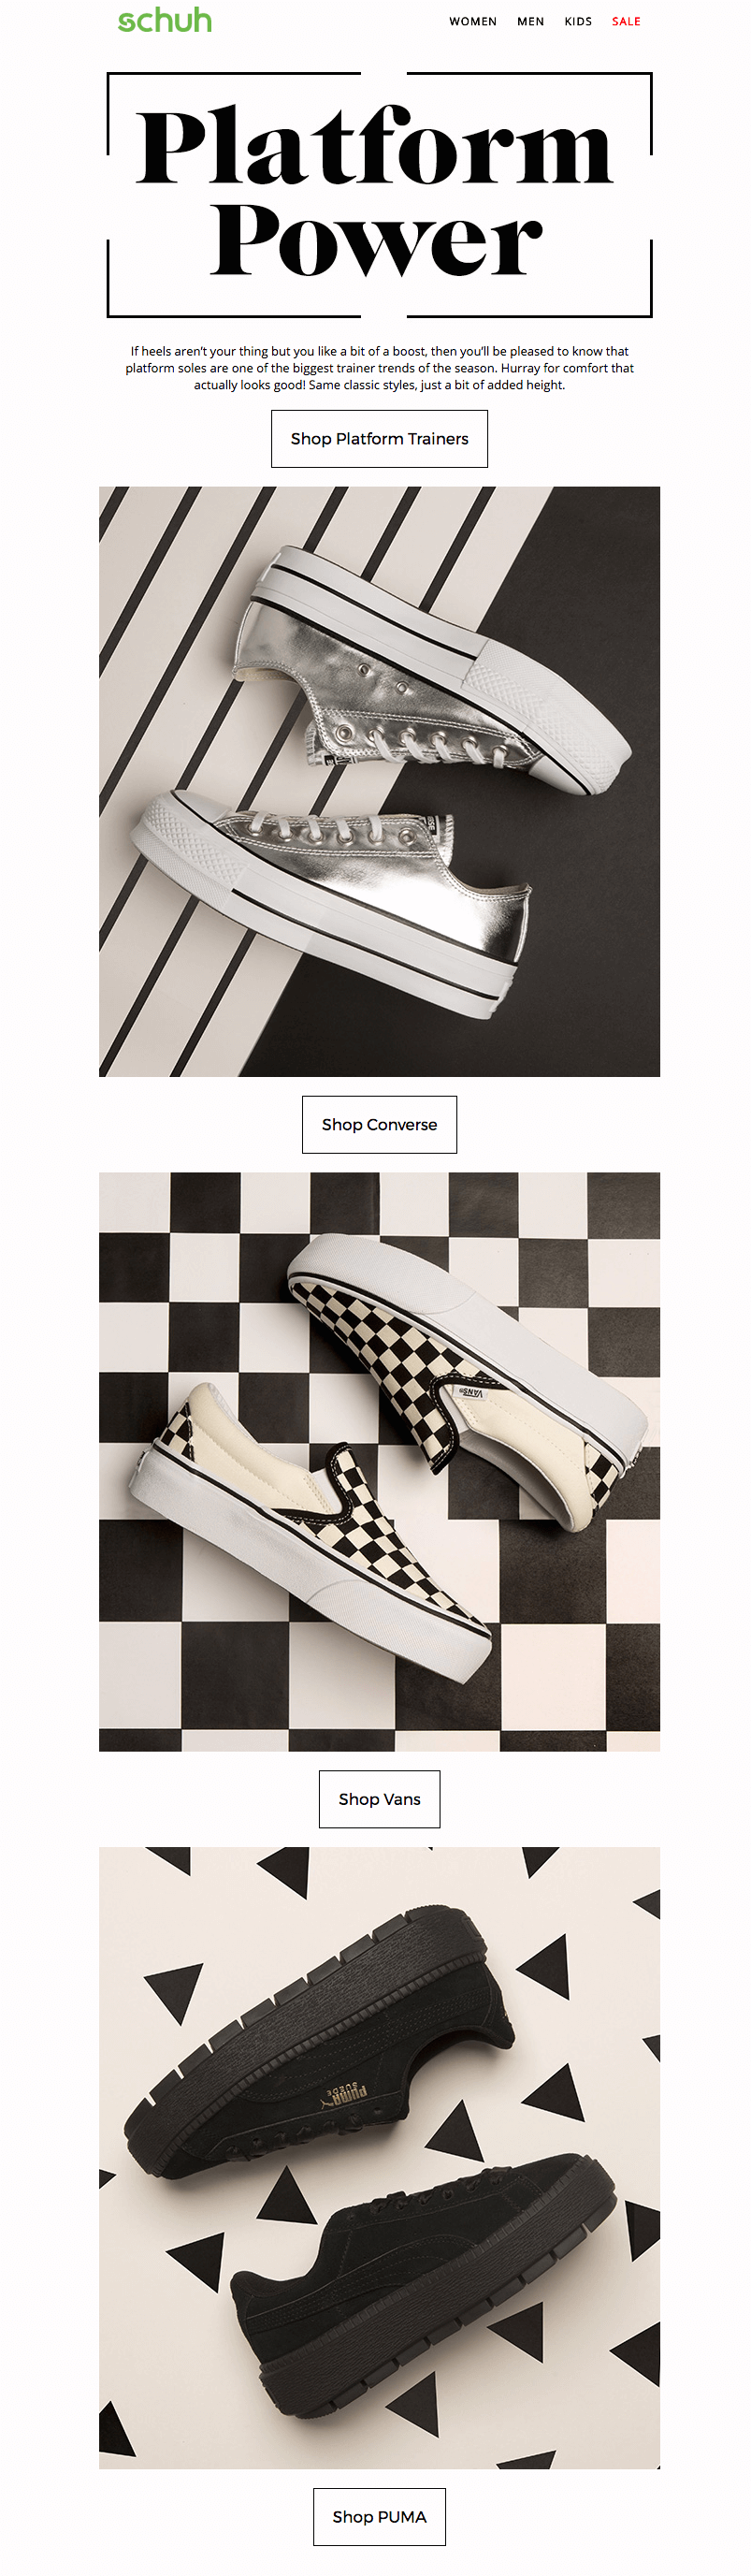 Schuh black and white emails